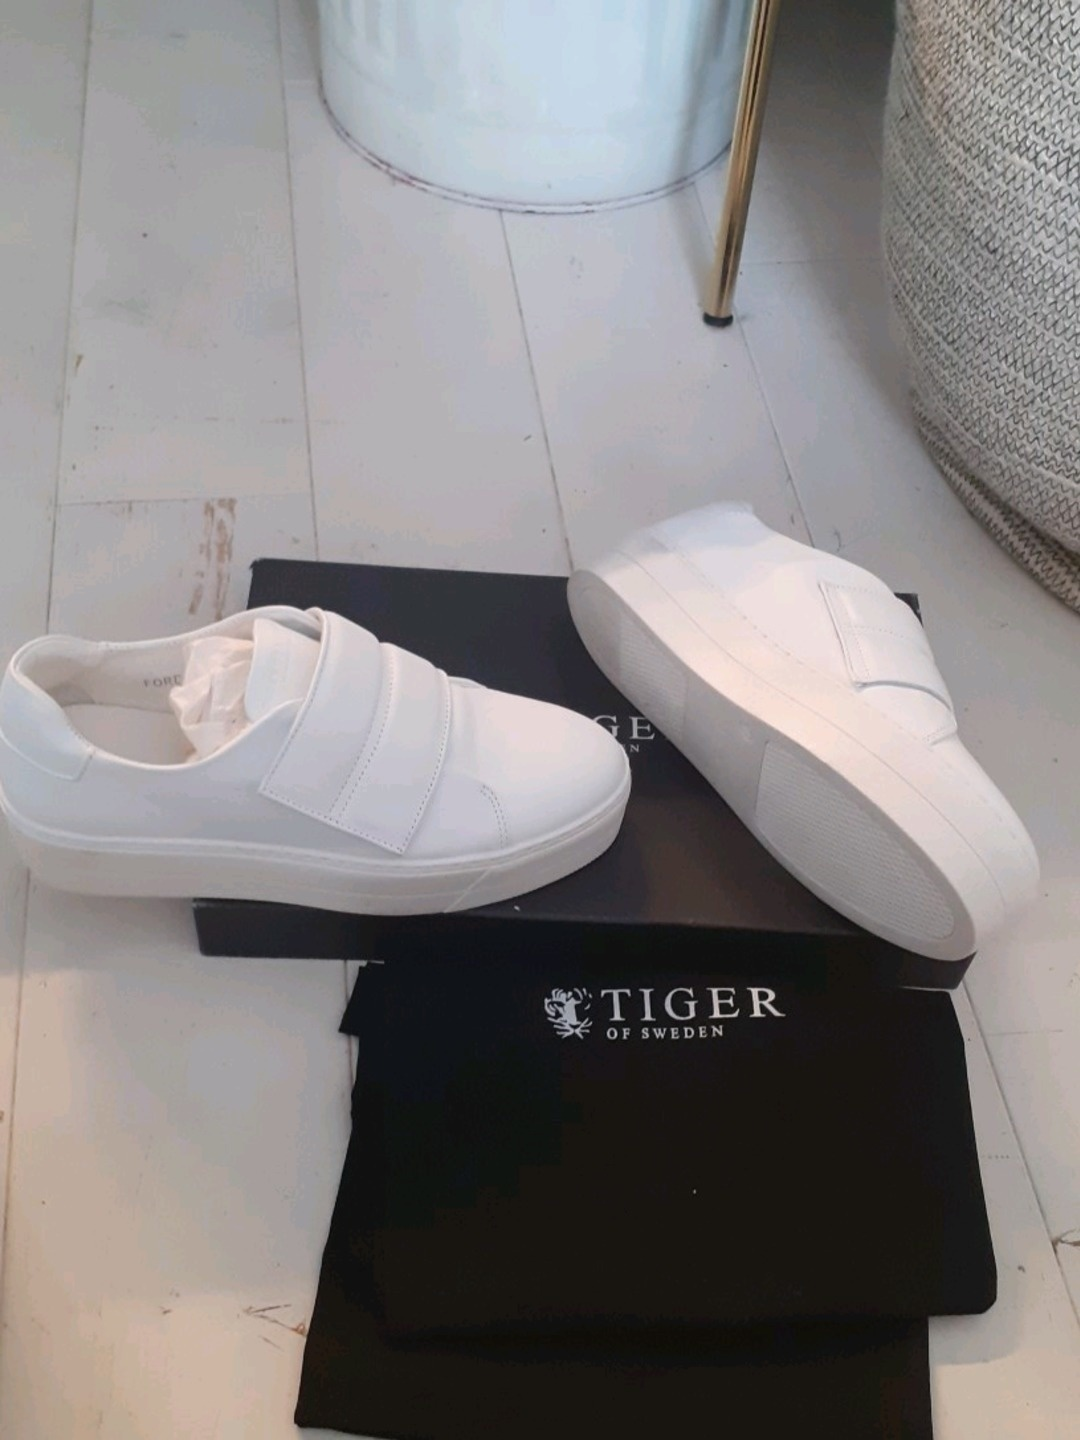 Women's boots - TIGER OF SWEDEN photo 2